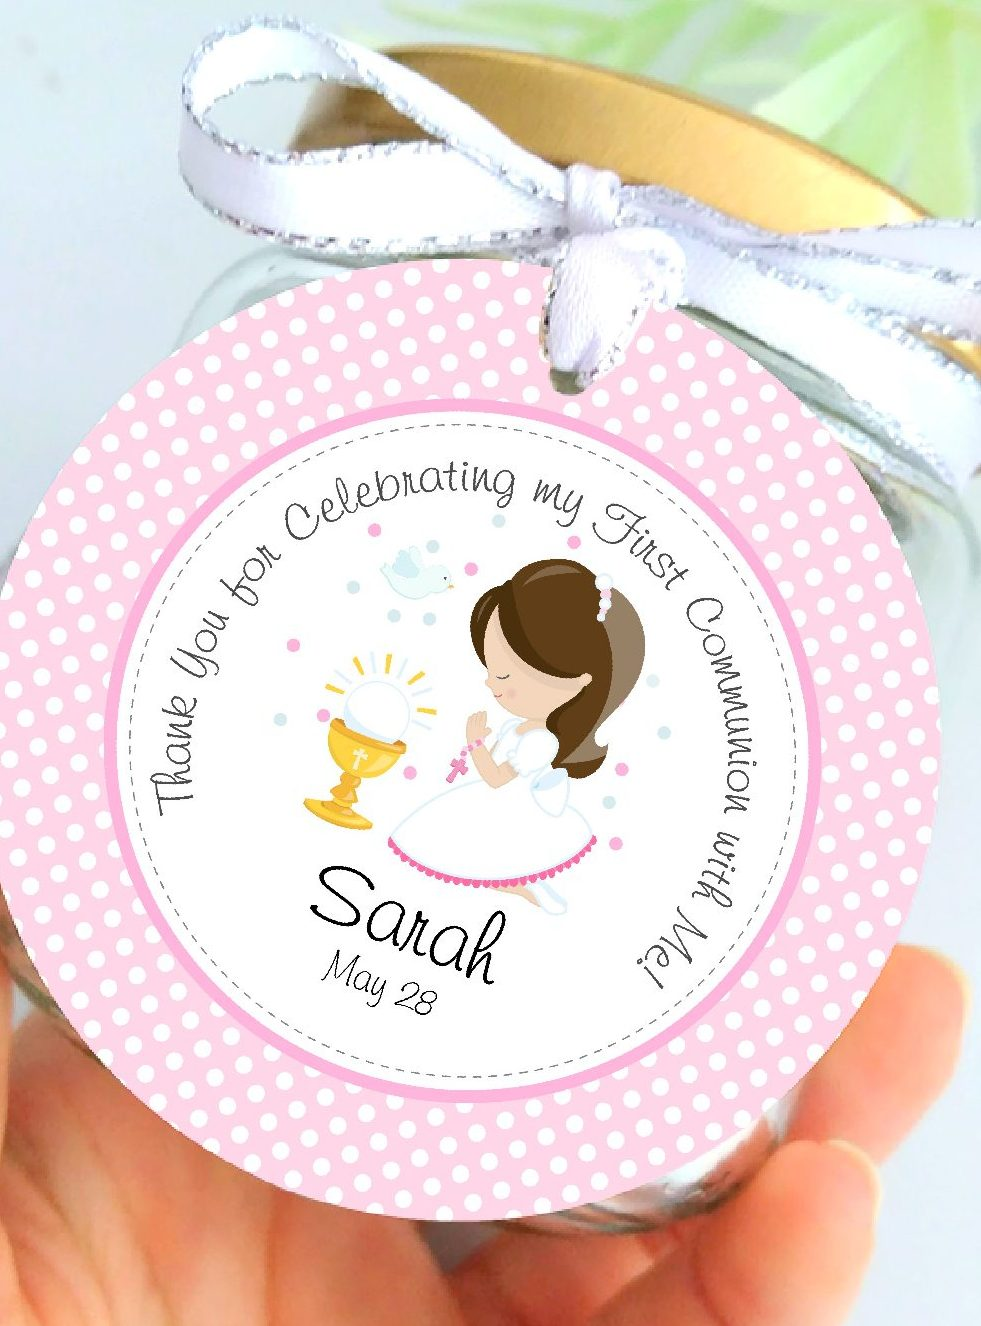 Printable Girl First Communion Favor Tag Template. Girl First Communion Party Ideas and Templates to make an amazing Party. Get inspired to create your own unforgettable celebration for your little girl.